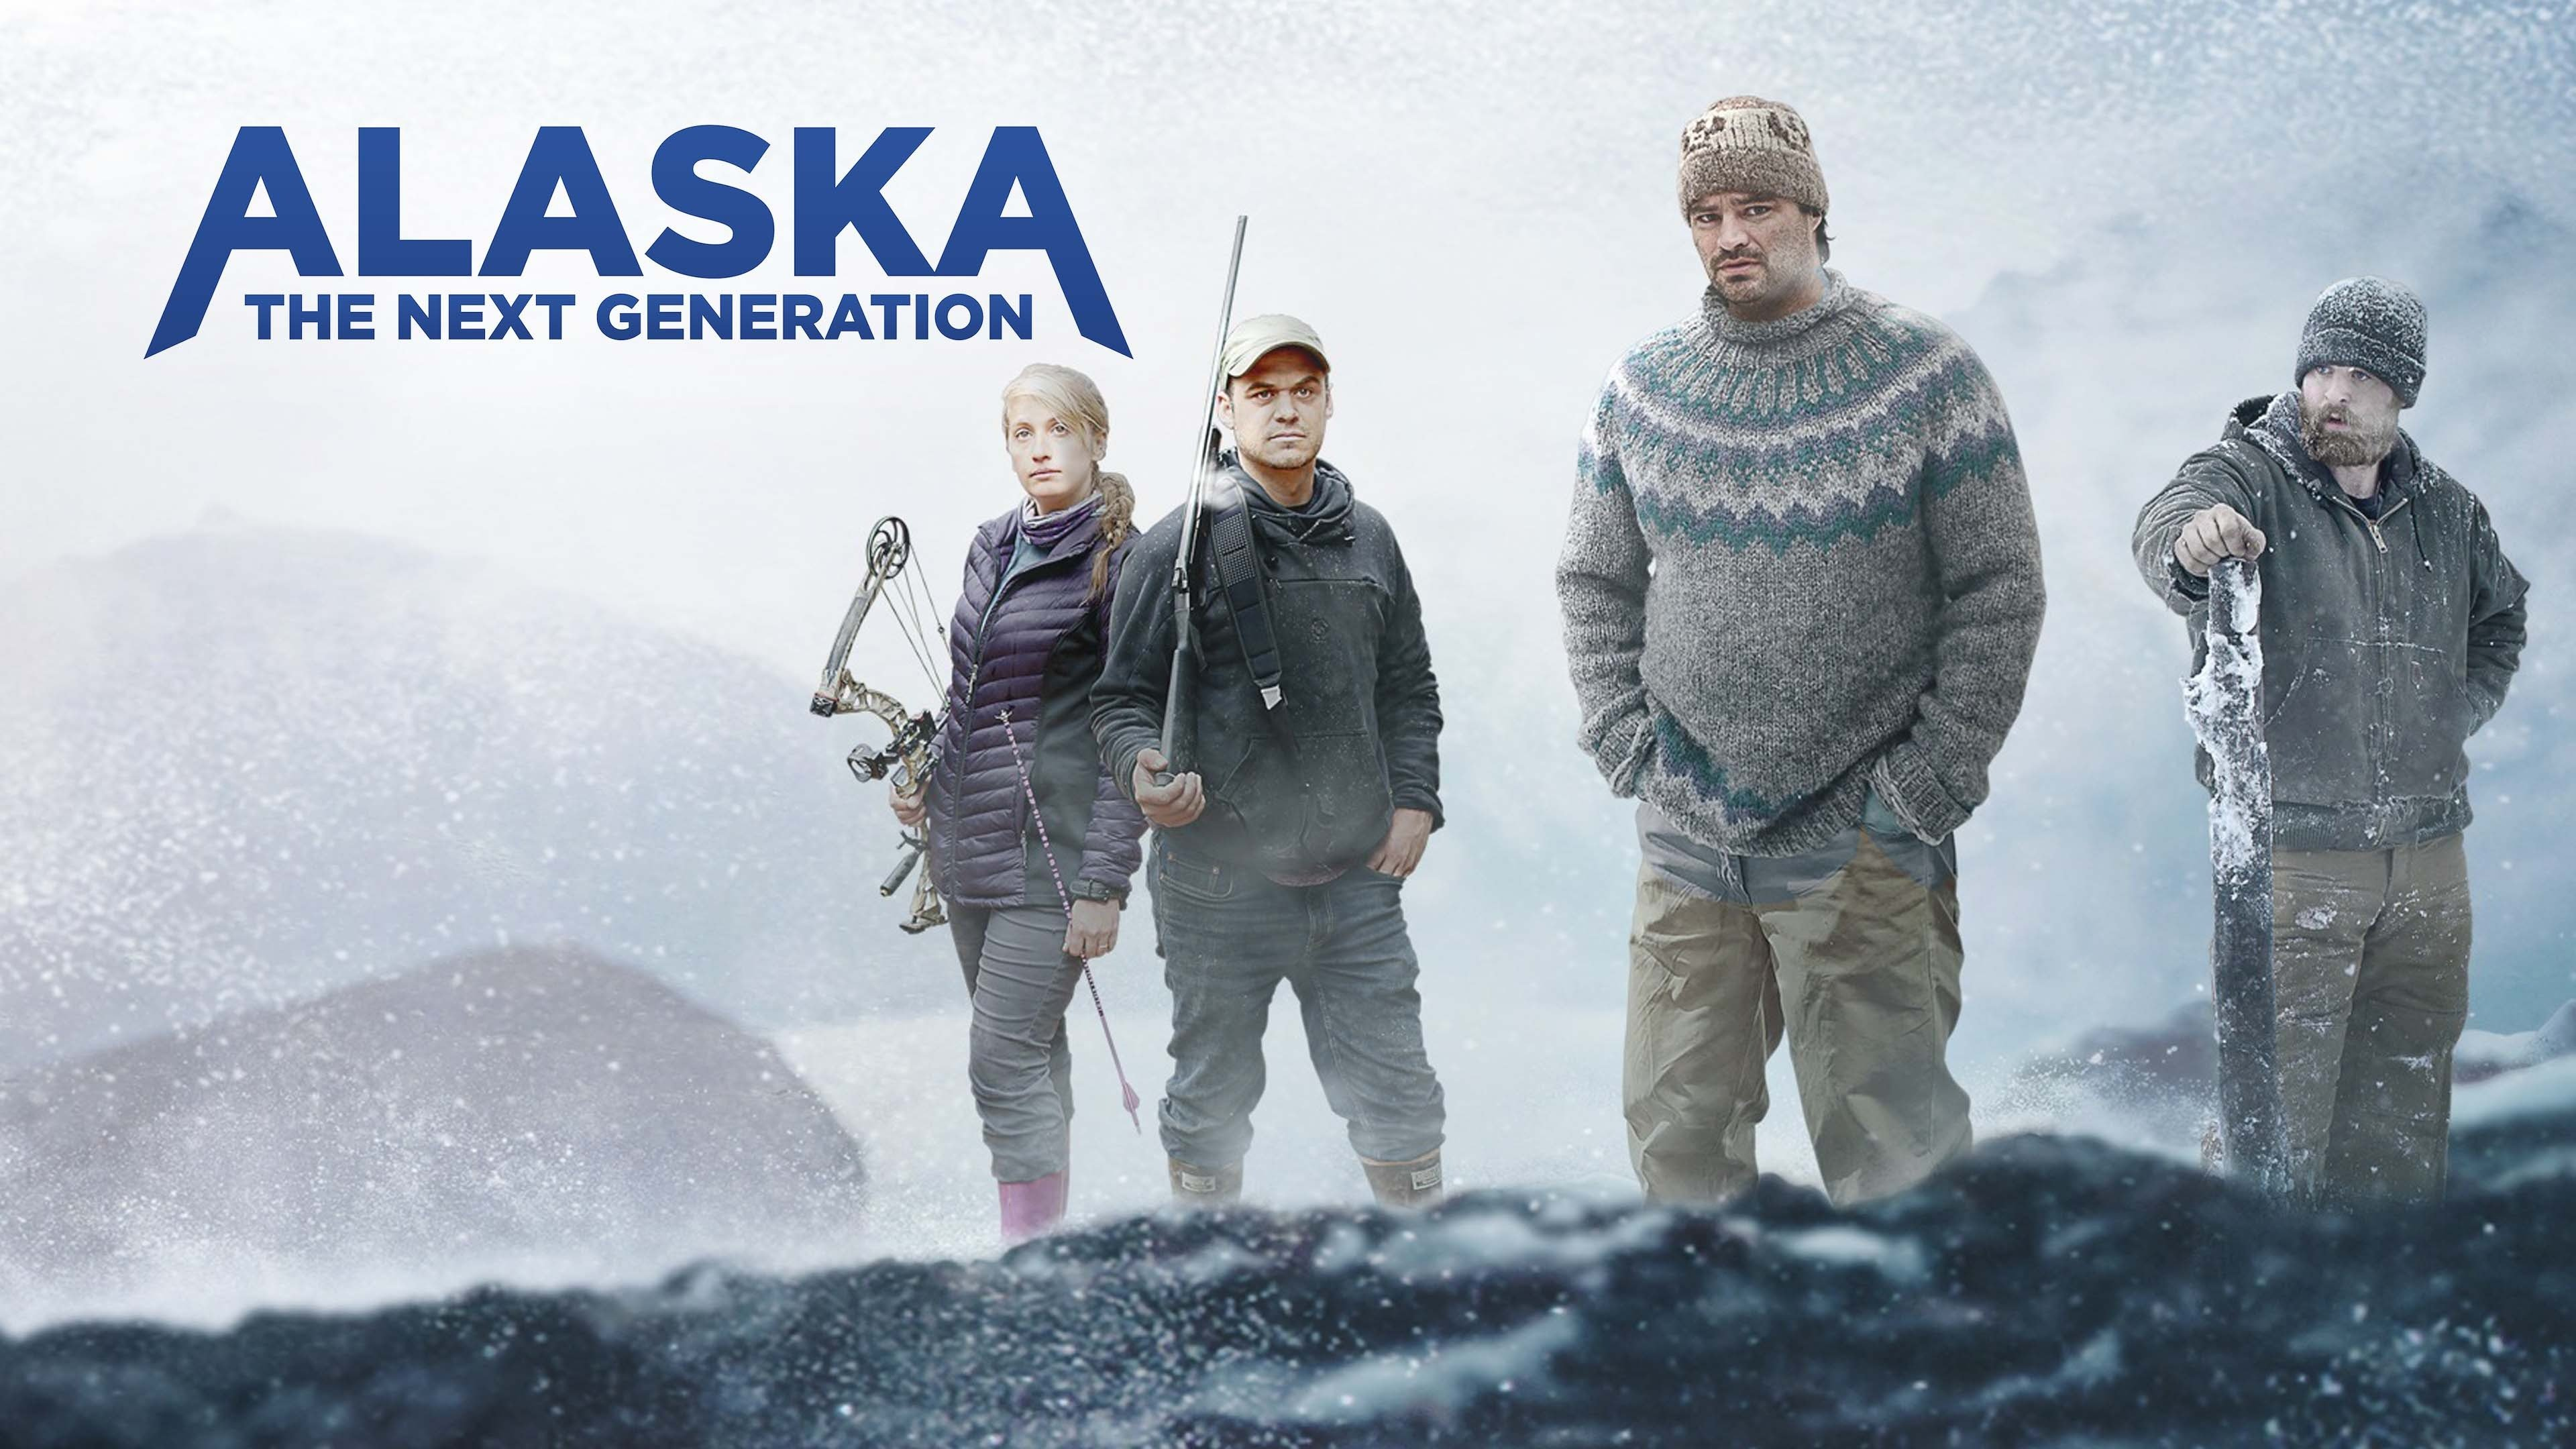 Alaska: The Next Generation